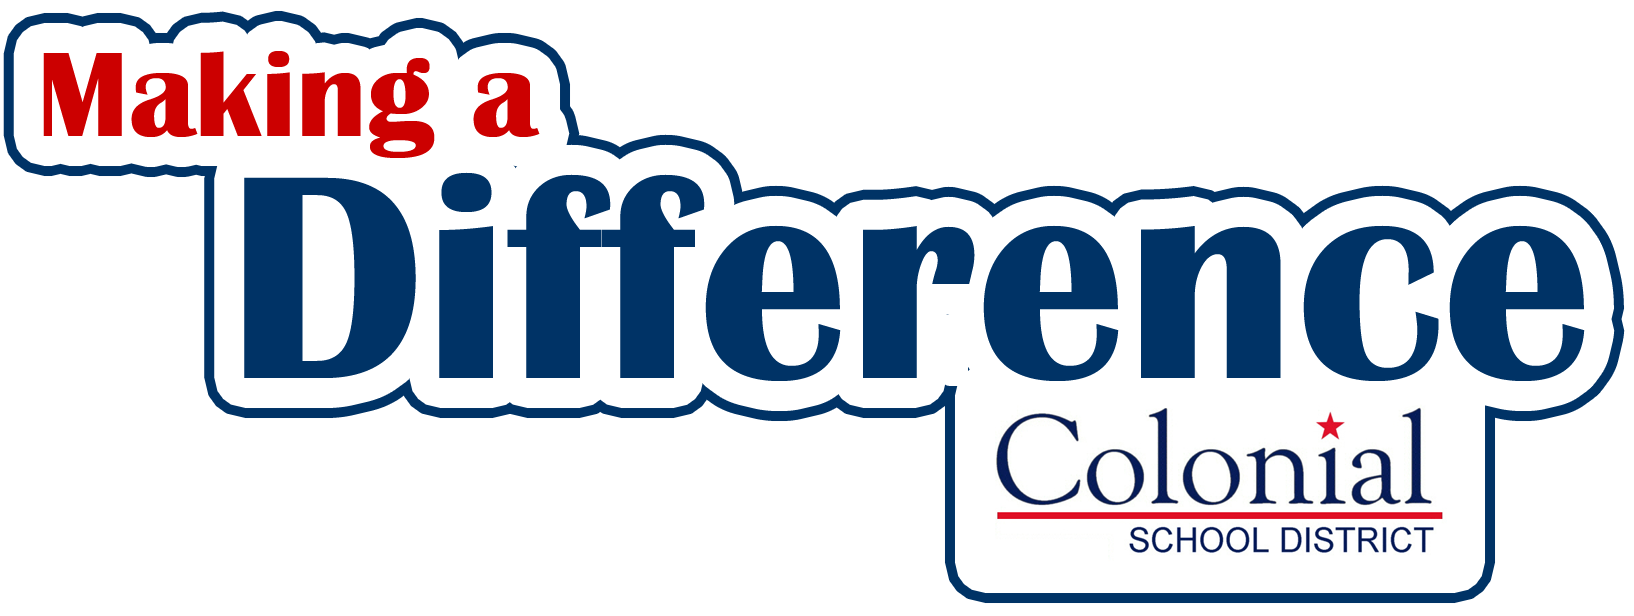 Logo that says Making a Difference Colonial School District